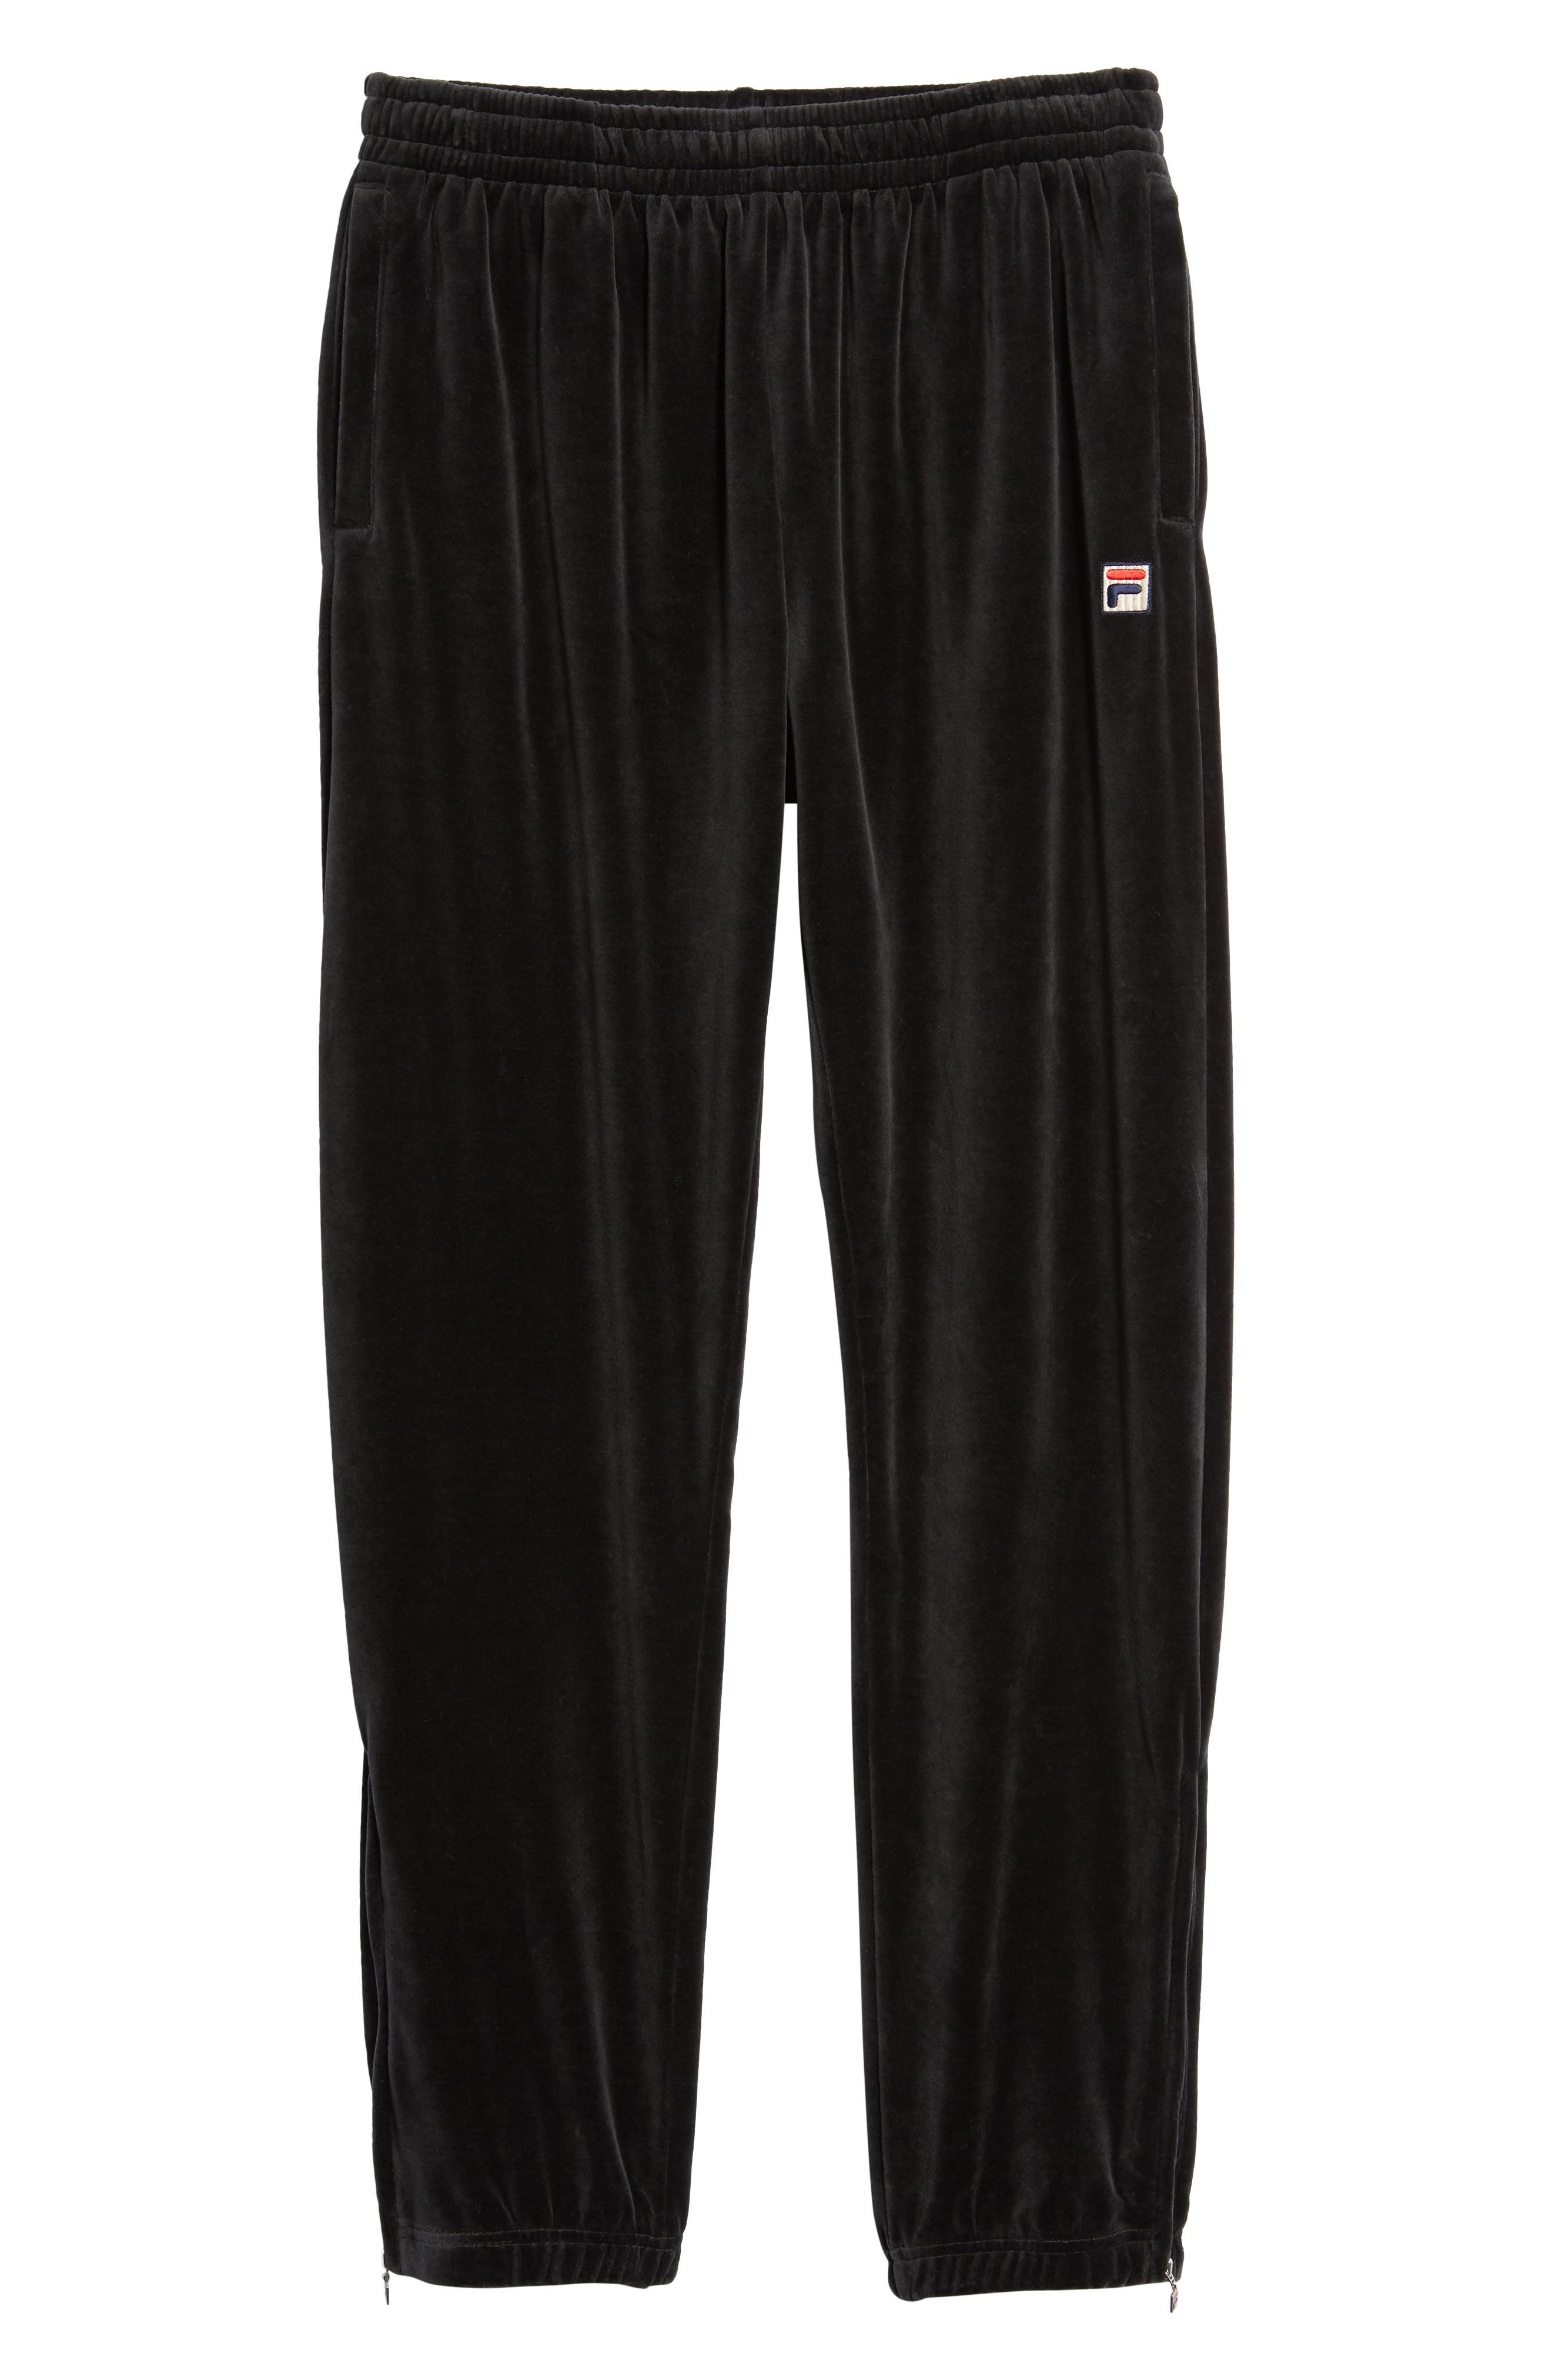 USA Slim Fit Velour Track Pants,                             Alternate thumbnail 6, color,                             001